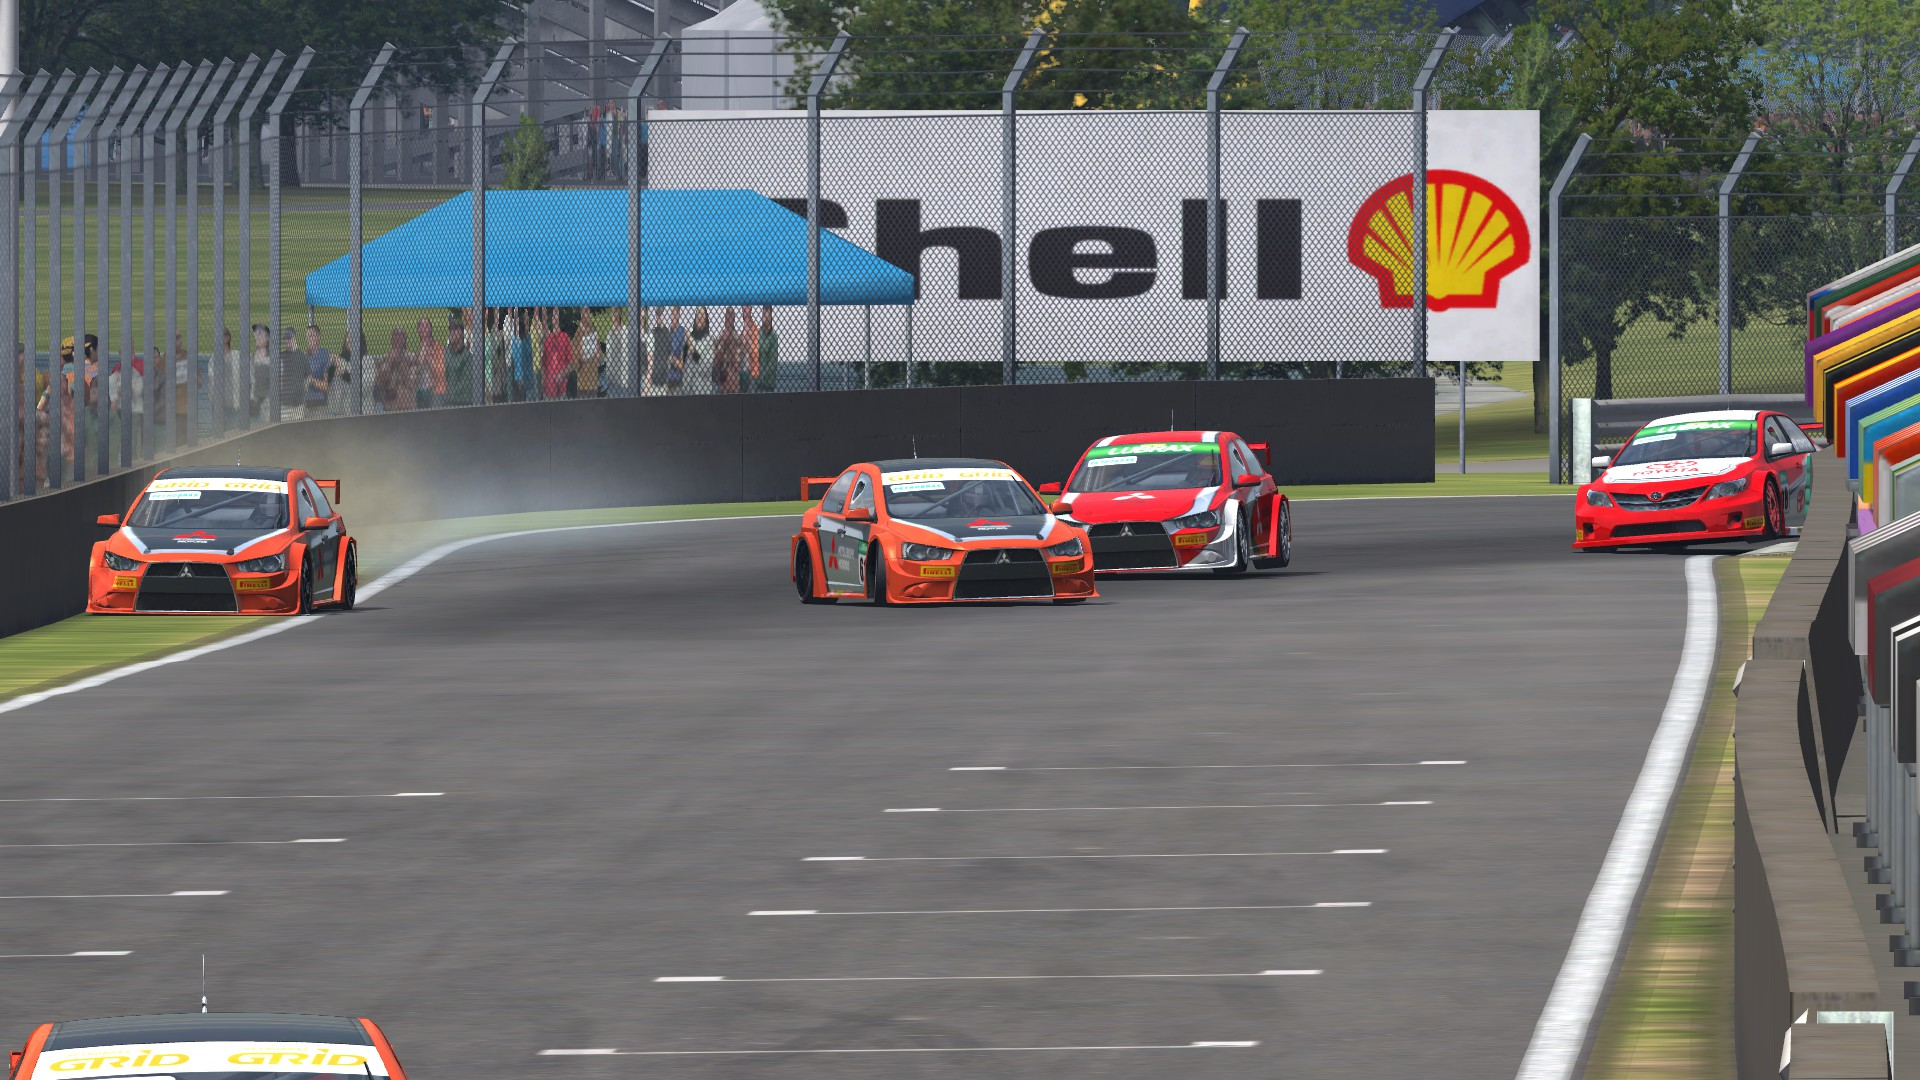 Sideways at Montreal